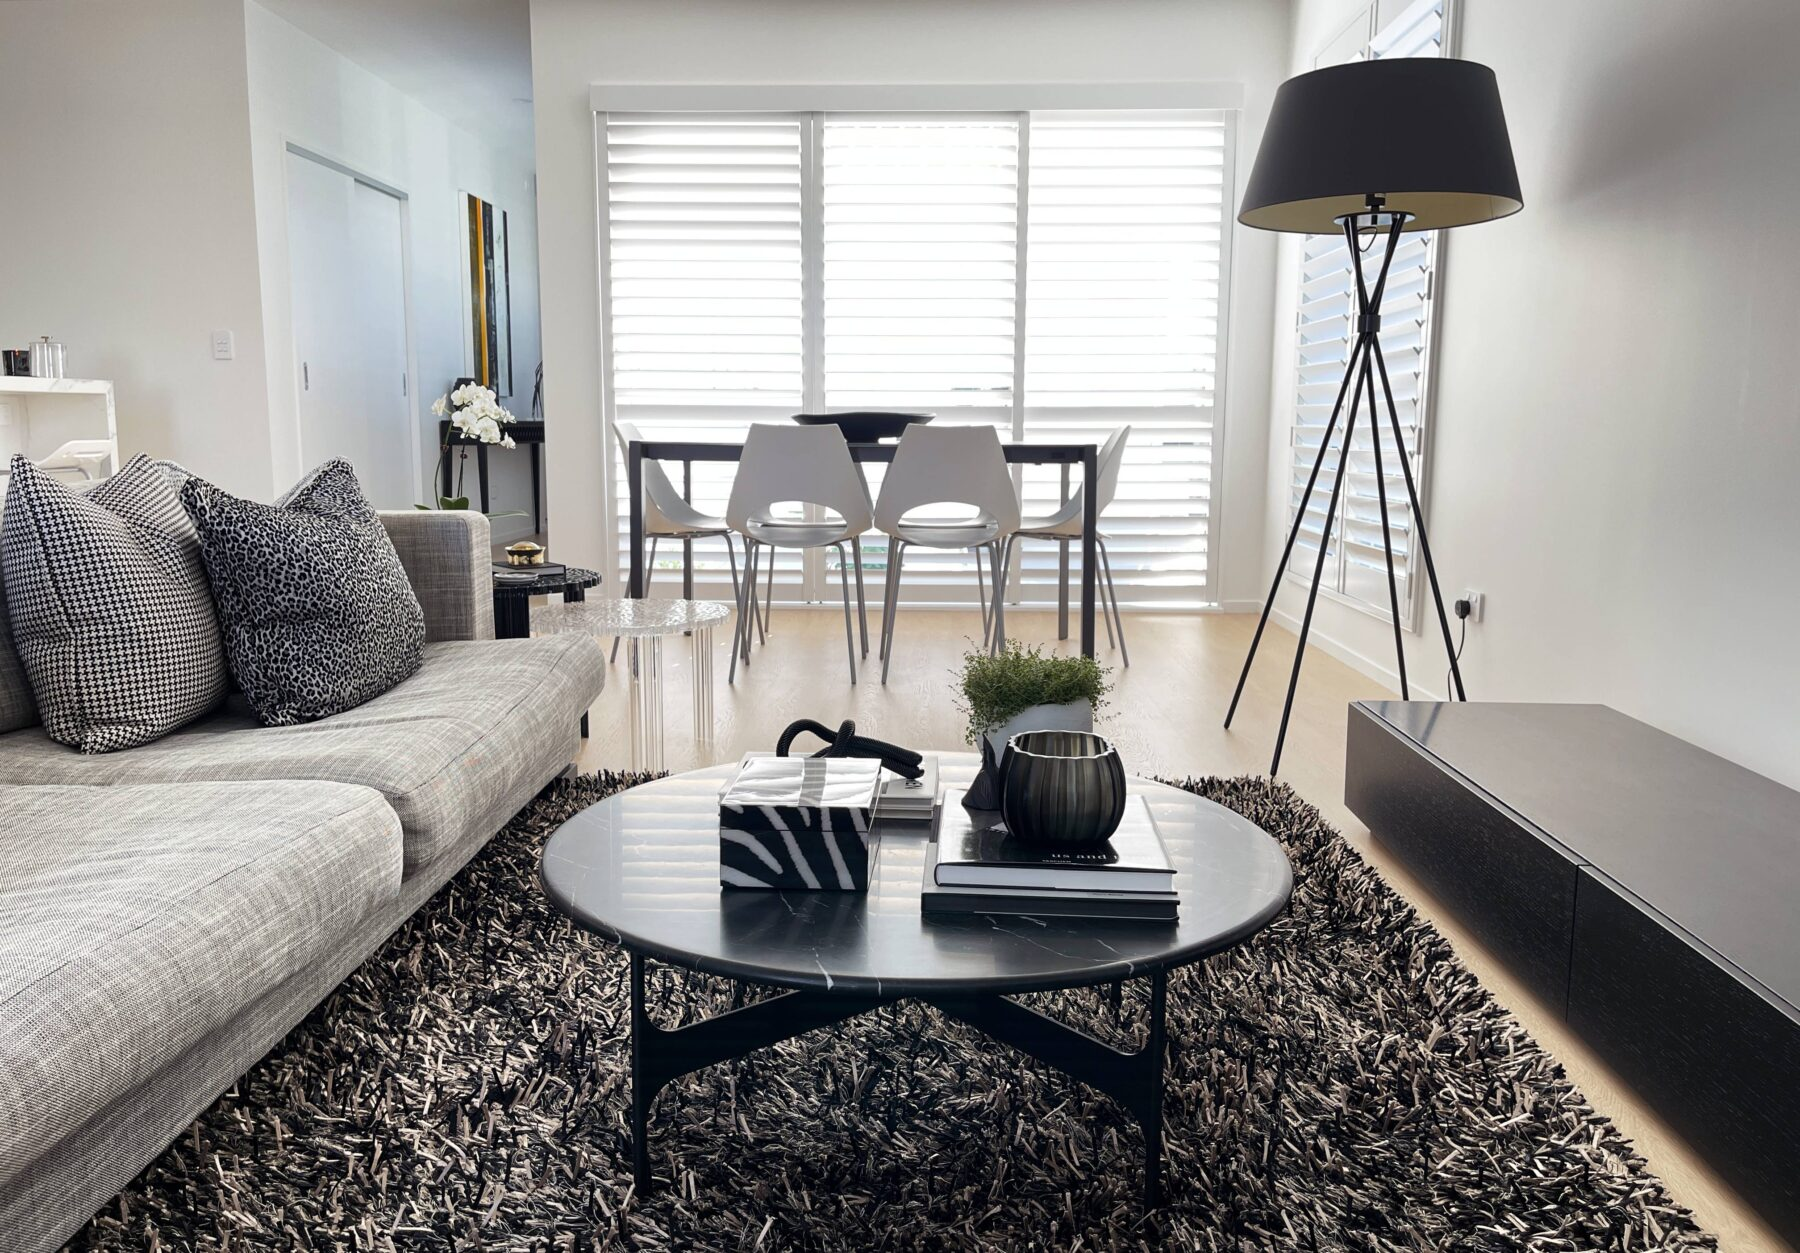 Black and white living room with black marble coffee table, black and white shaggy rug, black tv console, black standing floor lamp, white cut out dining chairs and light wood flooring, grey sofa, black and white patterned decorative cushions